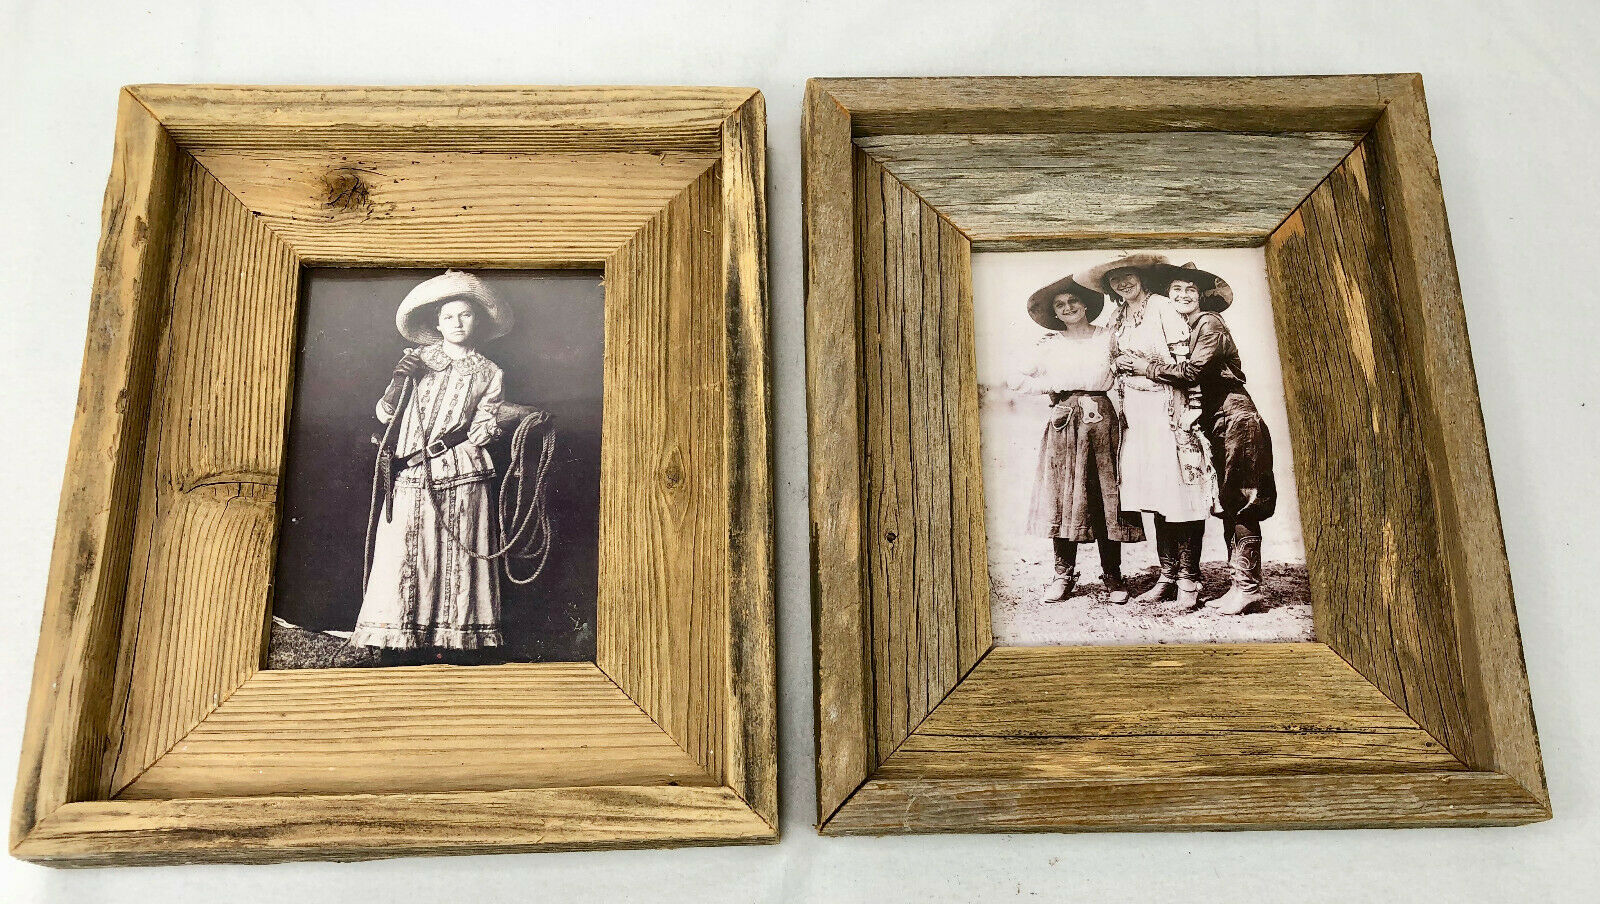 JT Gift Corral Silver and Gold Star picture frame